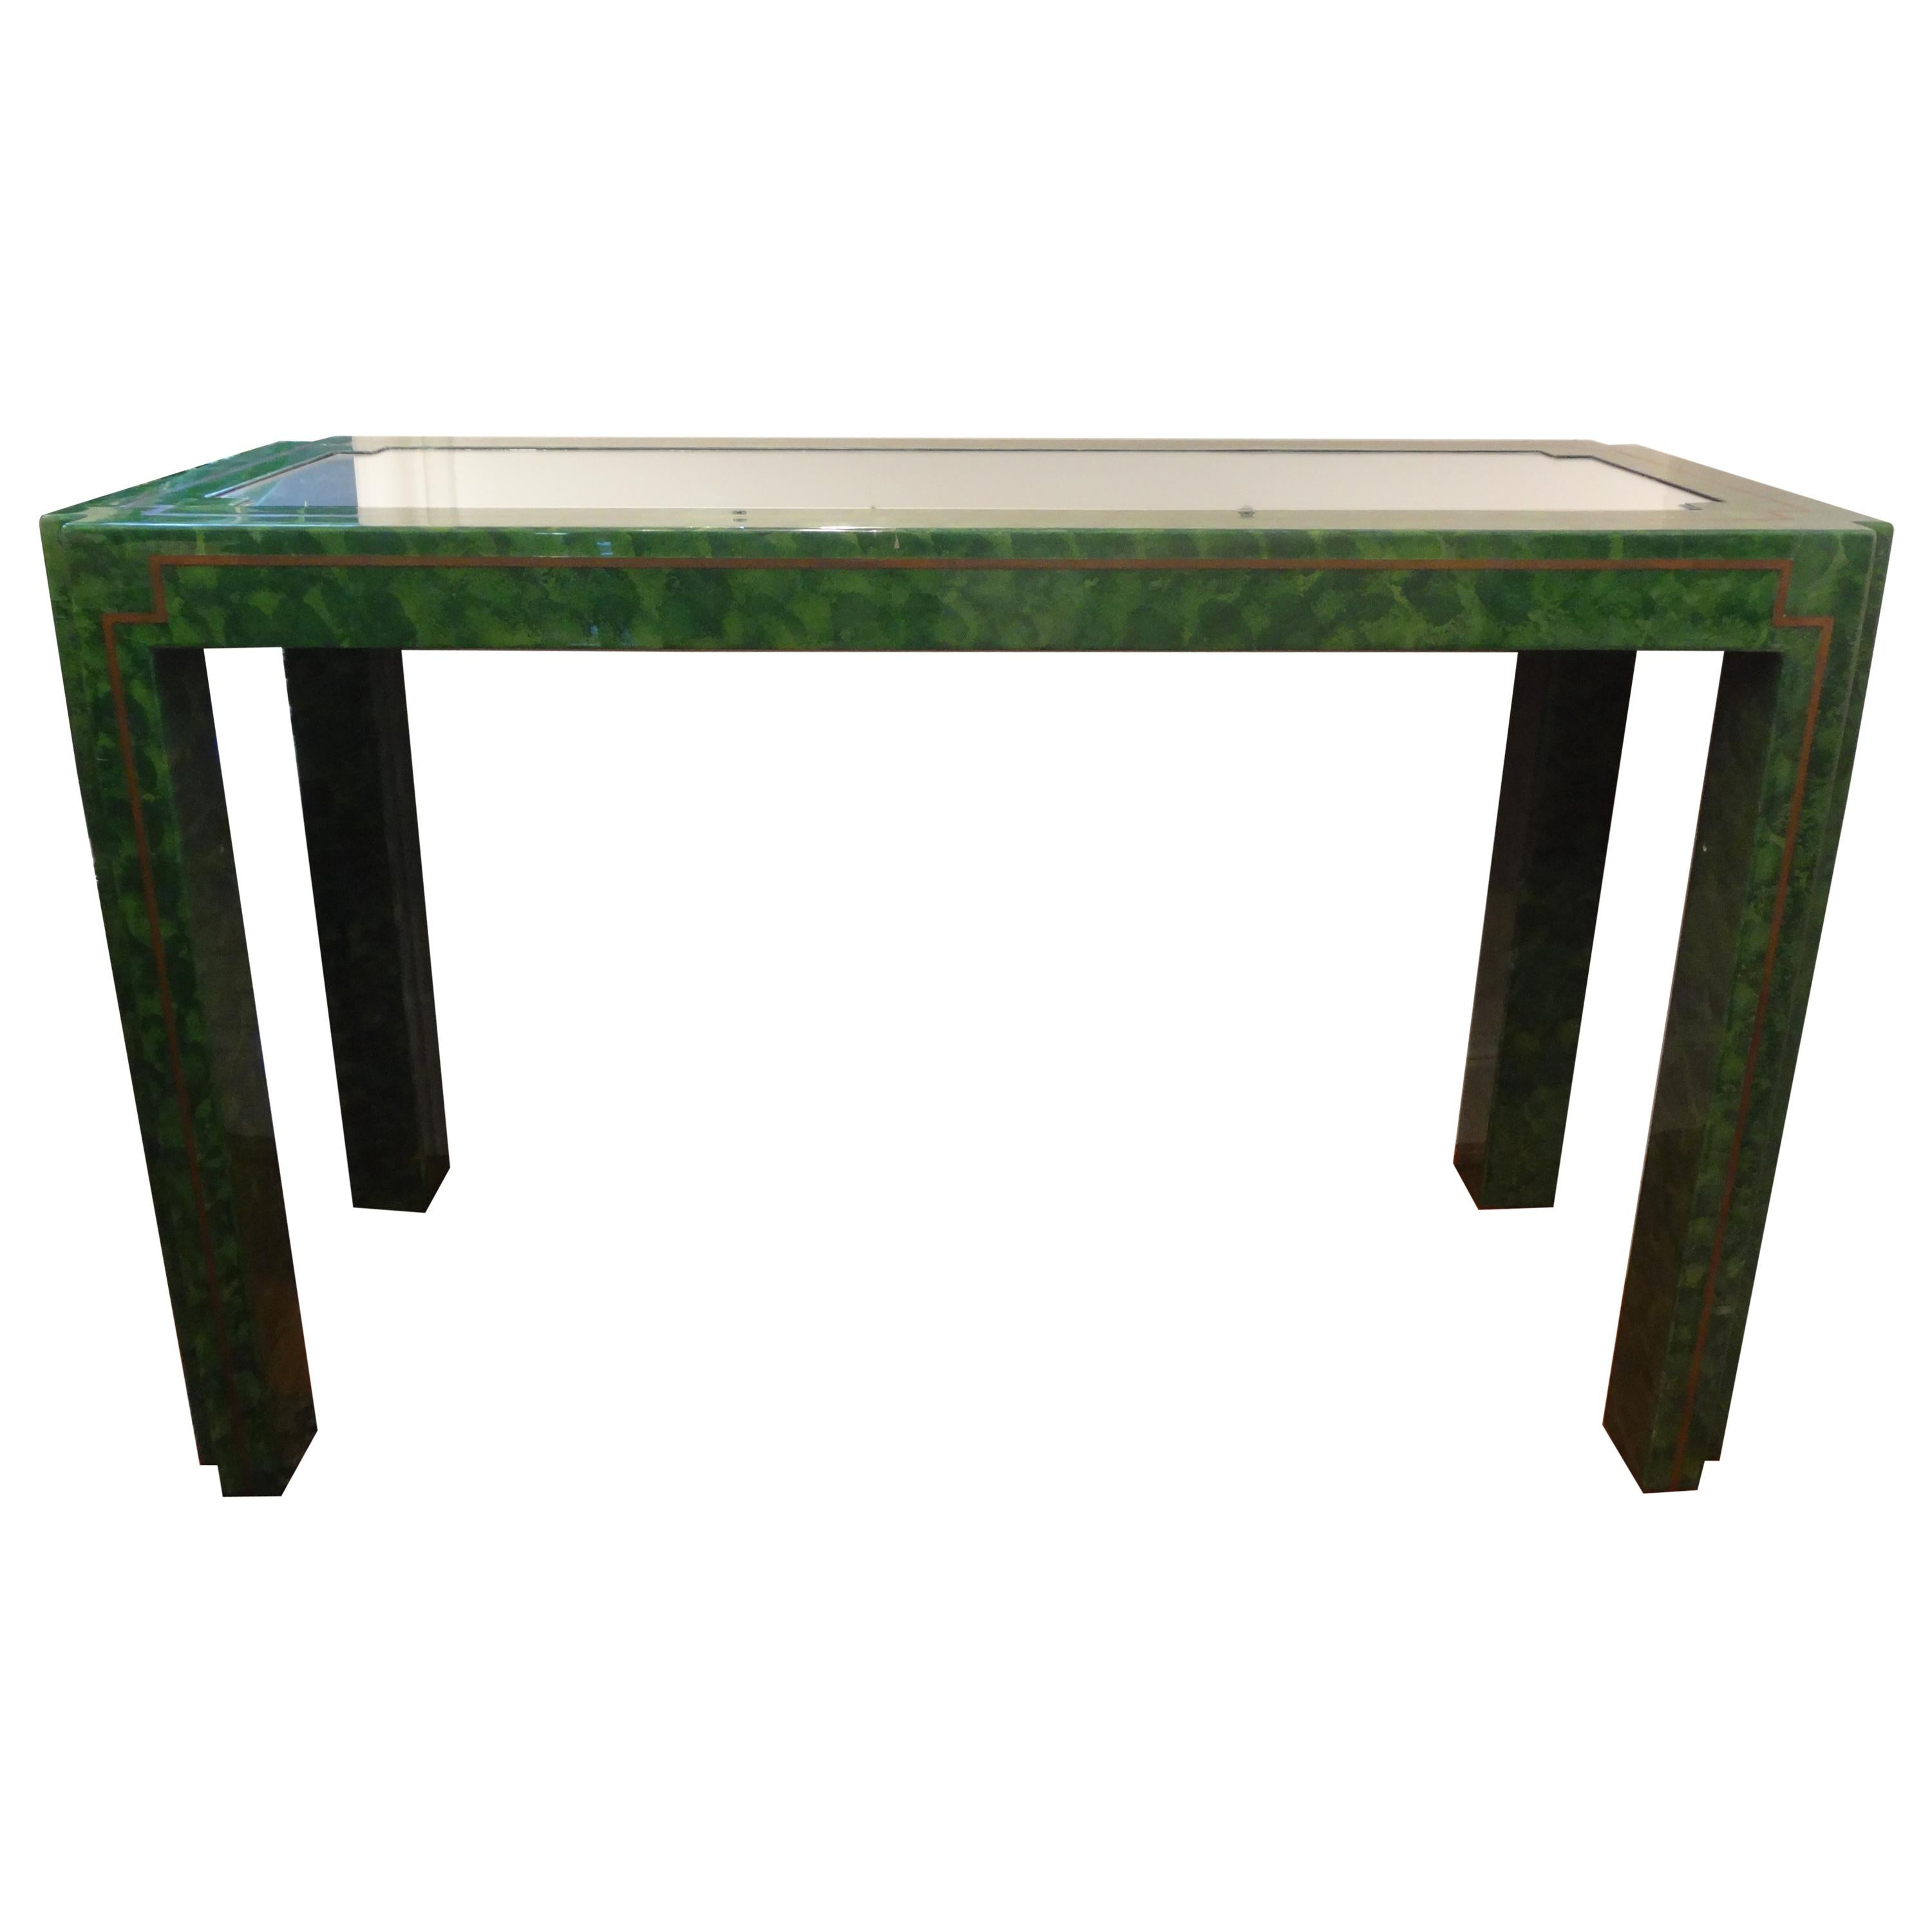 Karl Springer Inspired Lacquer and Brass Console Table